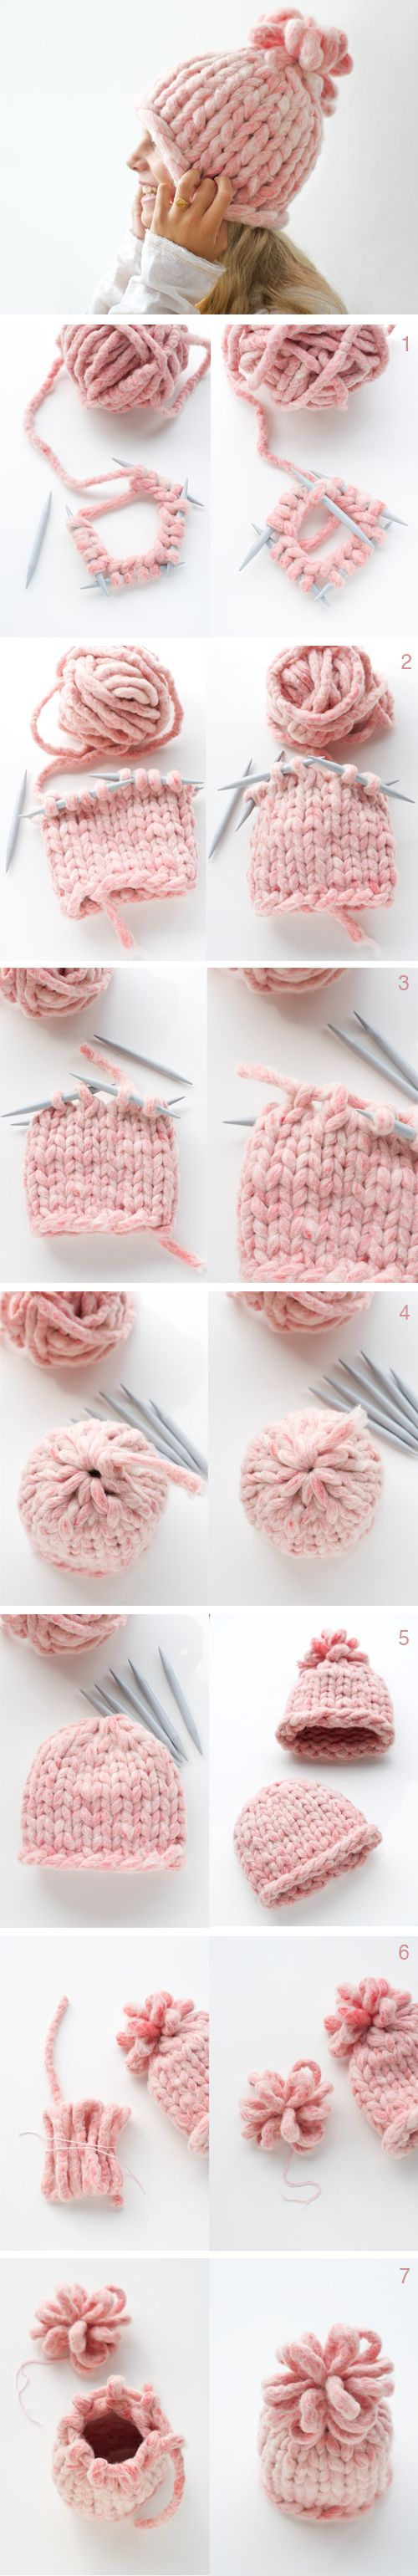 DIY Anleitung: Mütze stricken // fashion diy: how to knit a beanie via DaWanda.comDIY Anleitung: Mütze stricken // fashion diy: how to knit a beanie via DaWanda.com